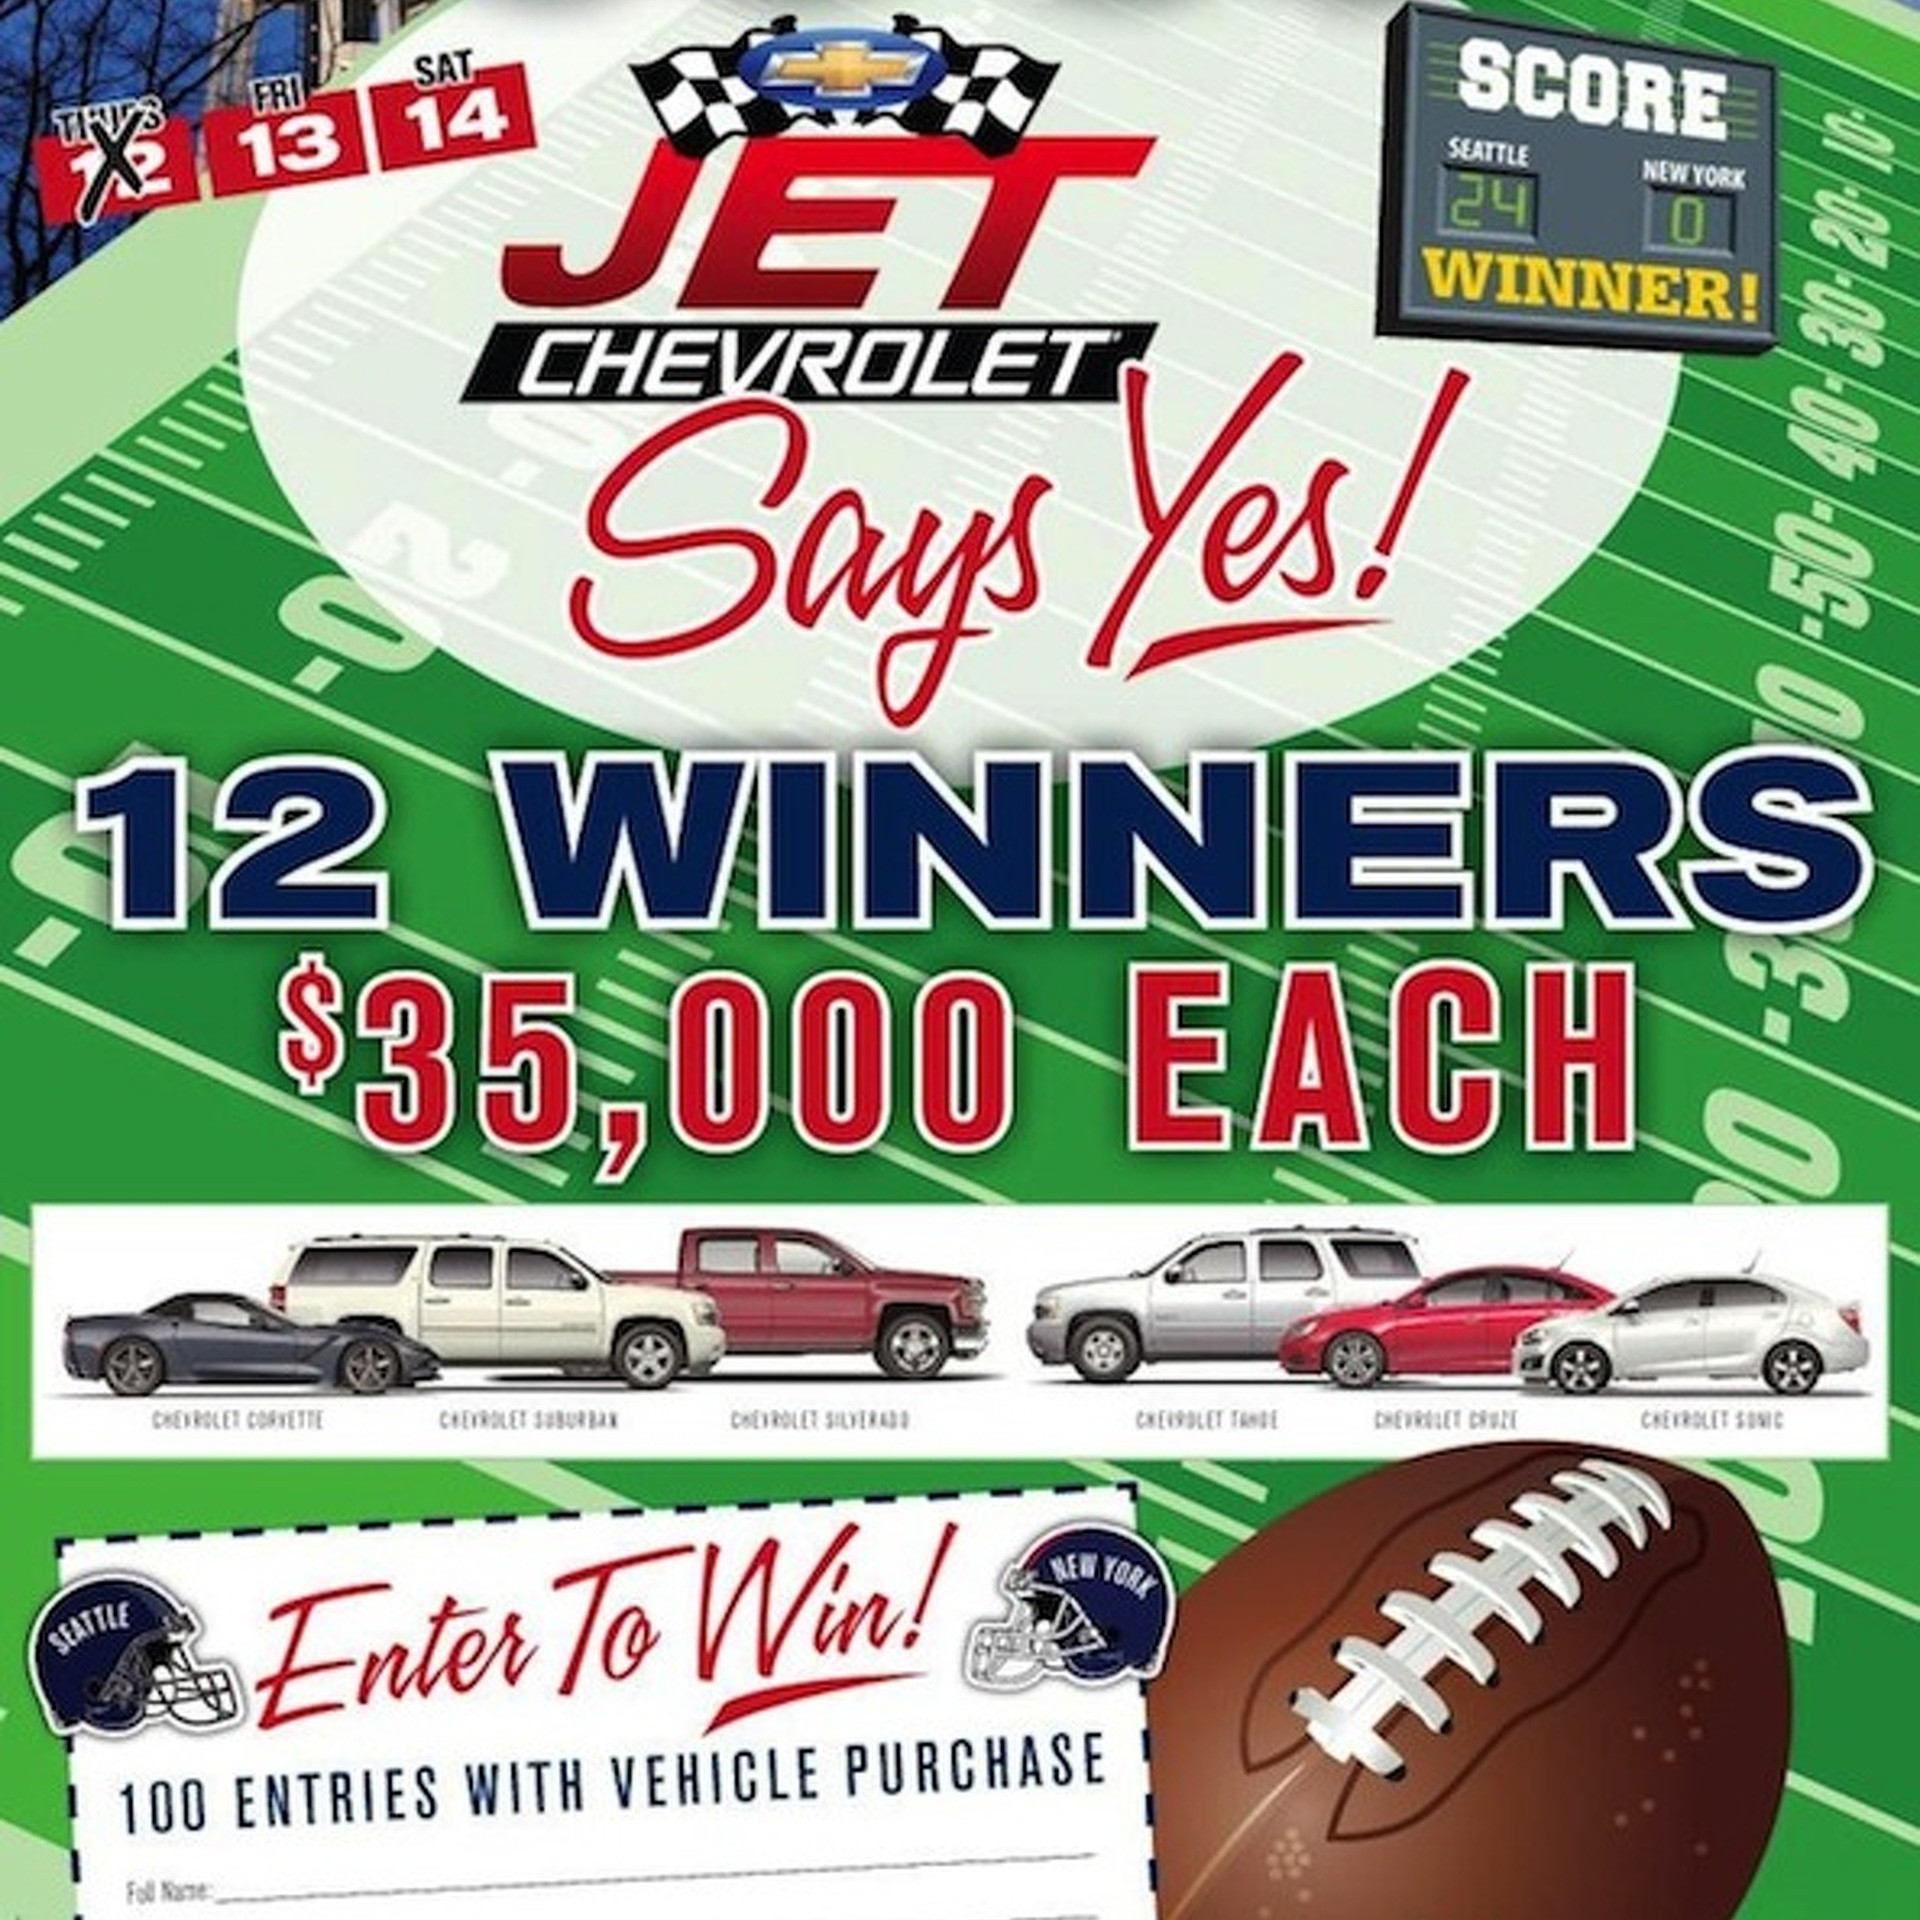 Seattle Chevy Dealer Has to Dish Out $420K After Seahawks Shutout Giants